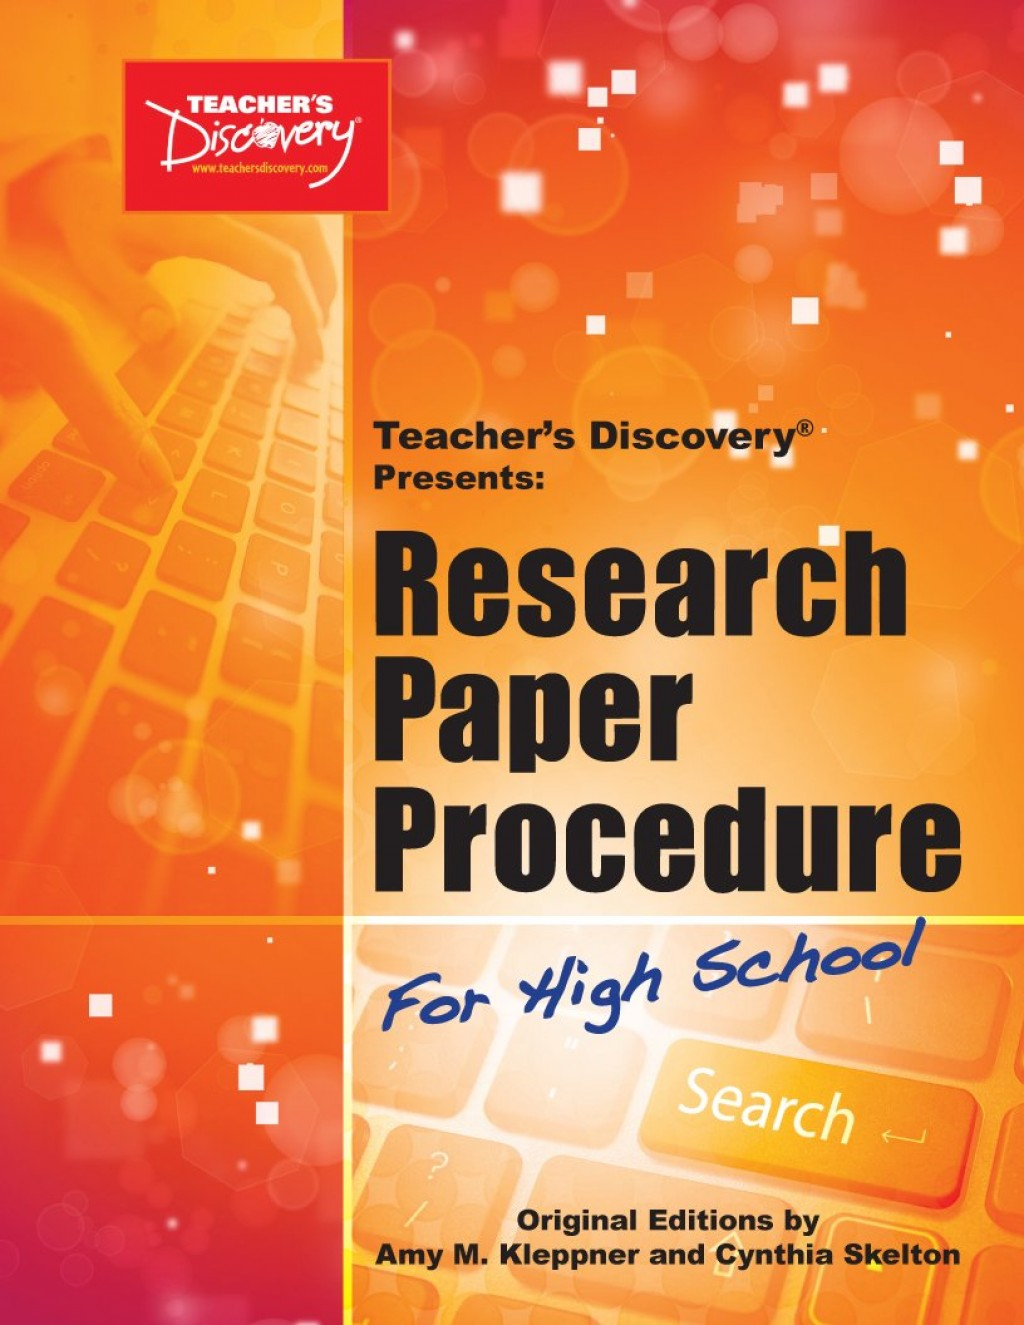 011 How To Publish Research Paper In High School Unusual A Large